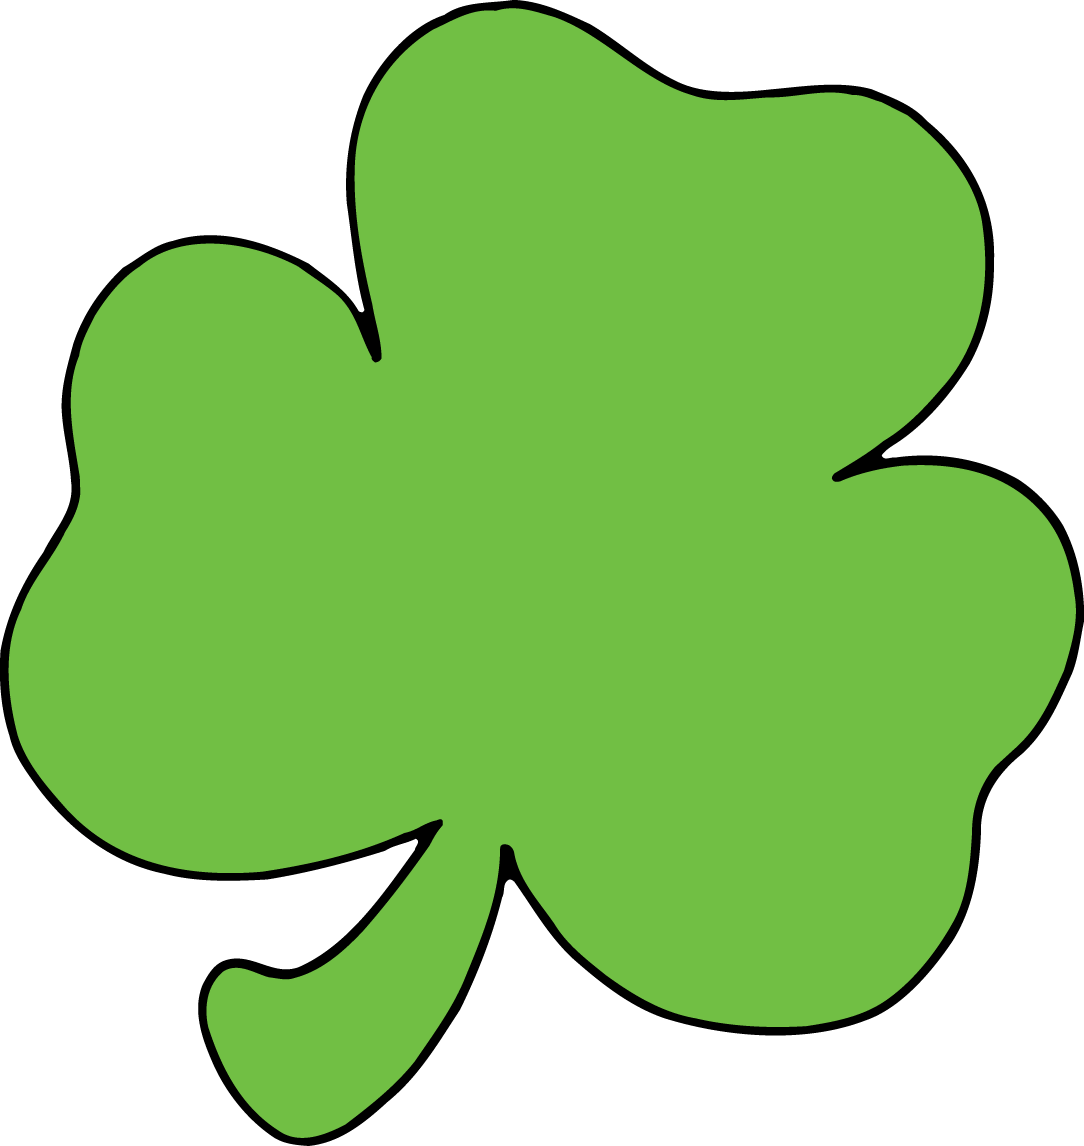 1084x1146 Shamrock Month By Month Clip Art Image